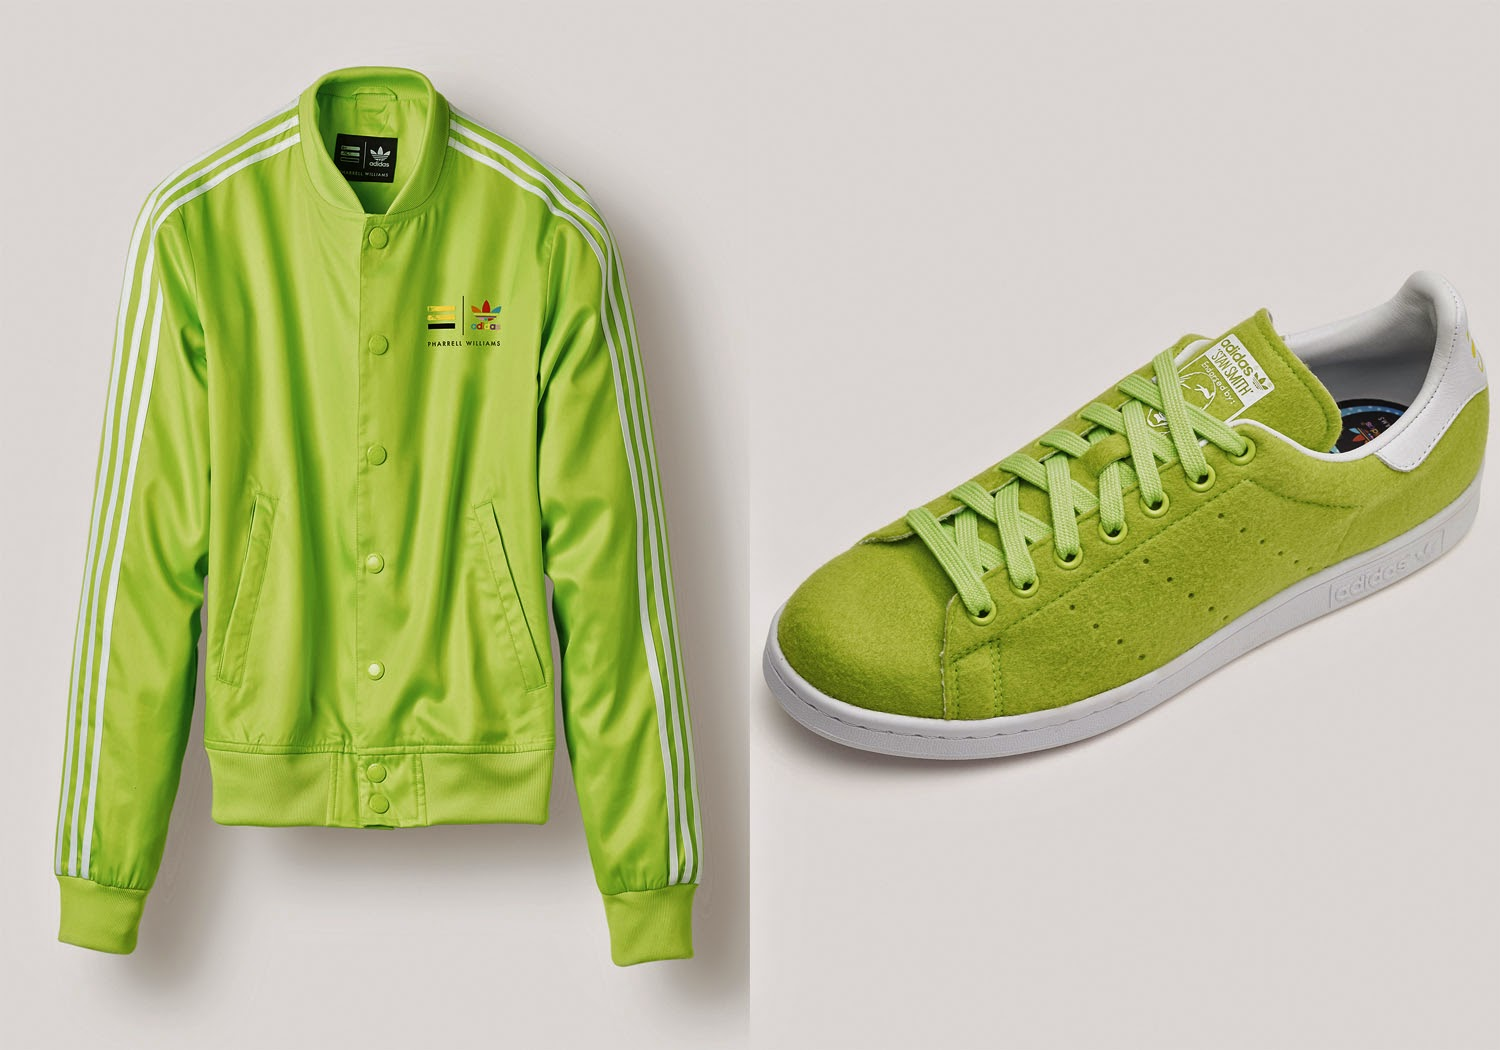 The collaboration between adidas and Pharrell Williams is built on a  vibrant sense of optimism, highlighting the importance of equality.